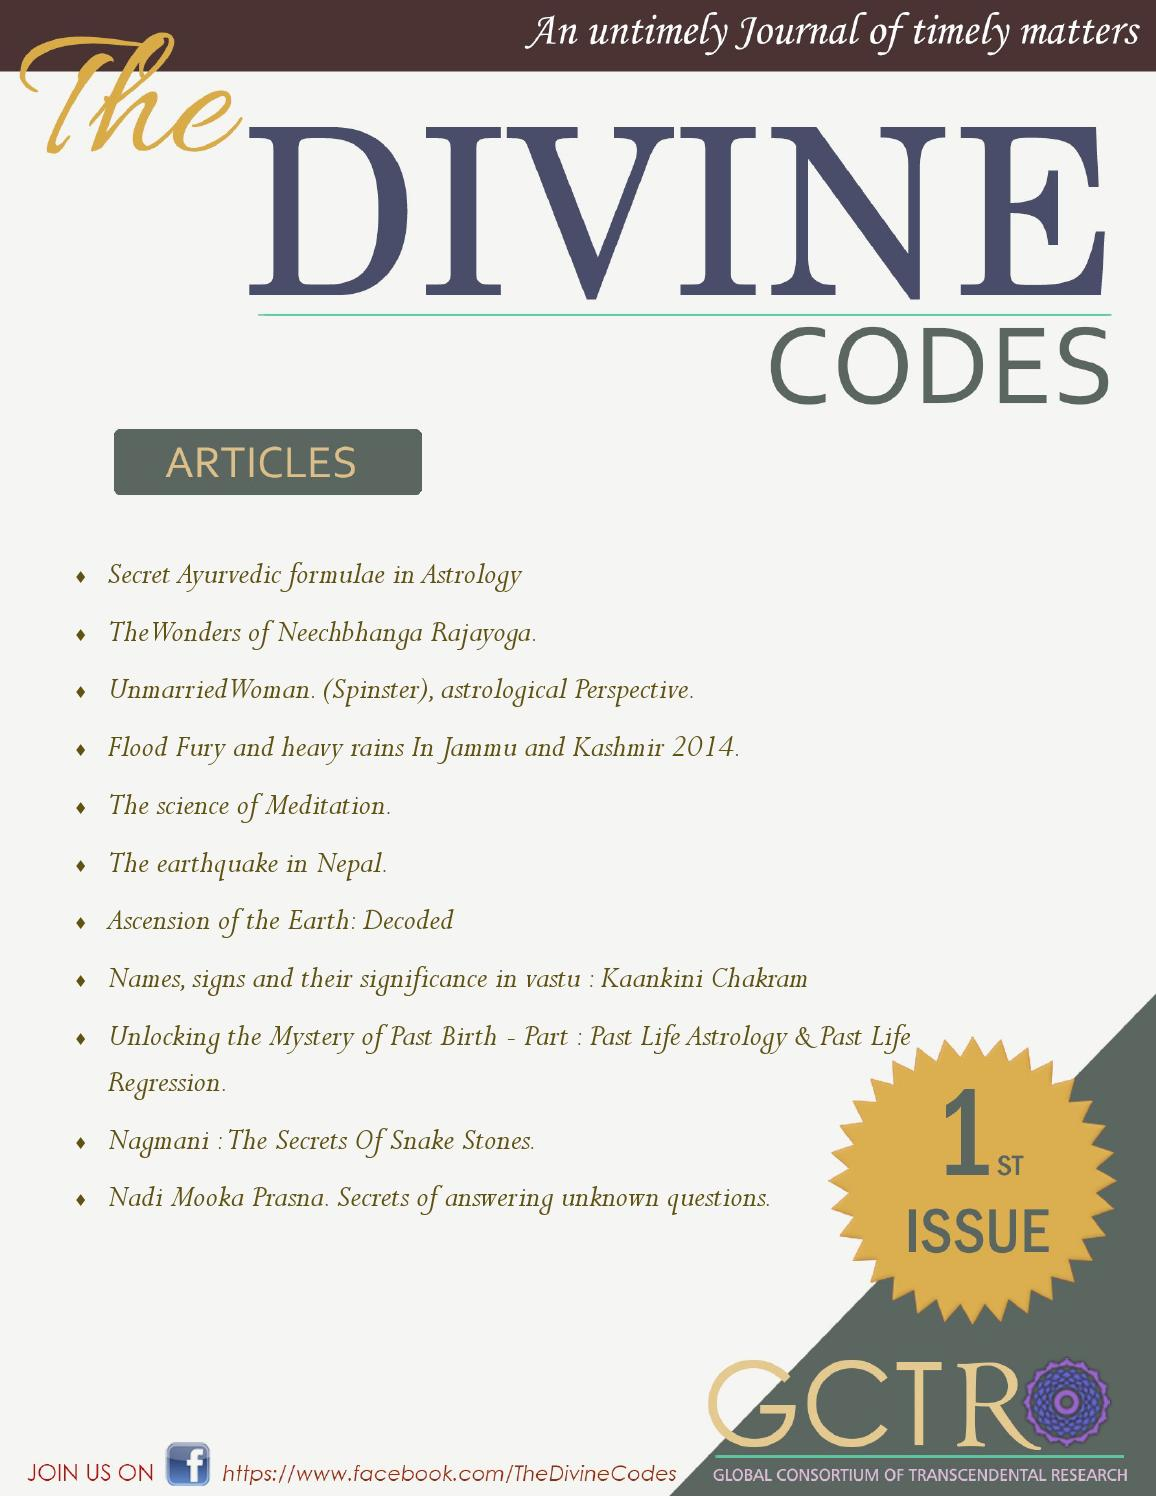 The divine codes volume 1 by the vedicsiddhanta issuu malvernweather Gallery